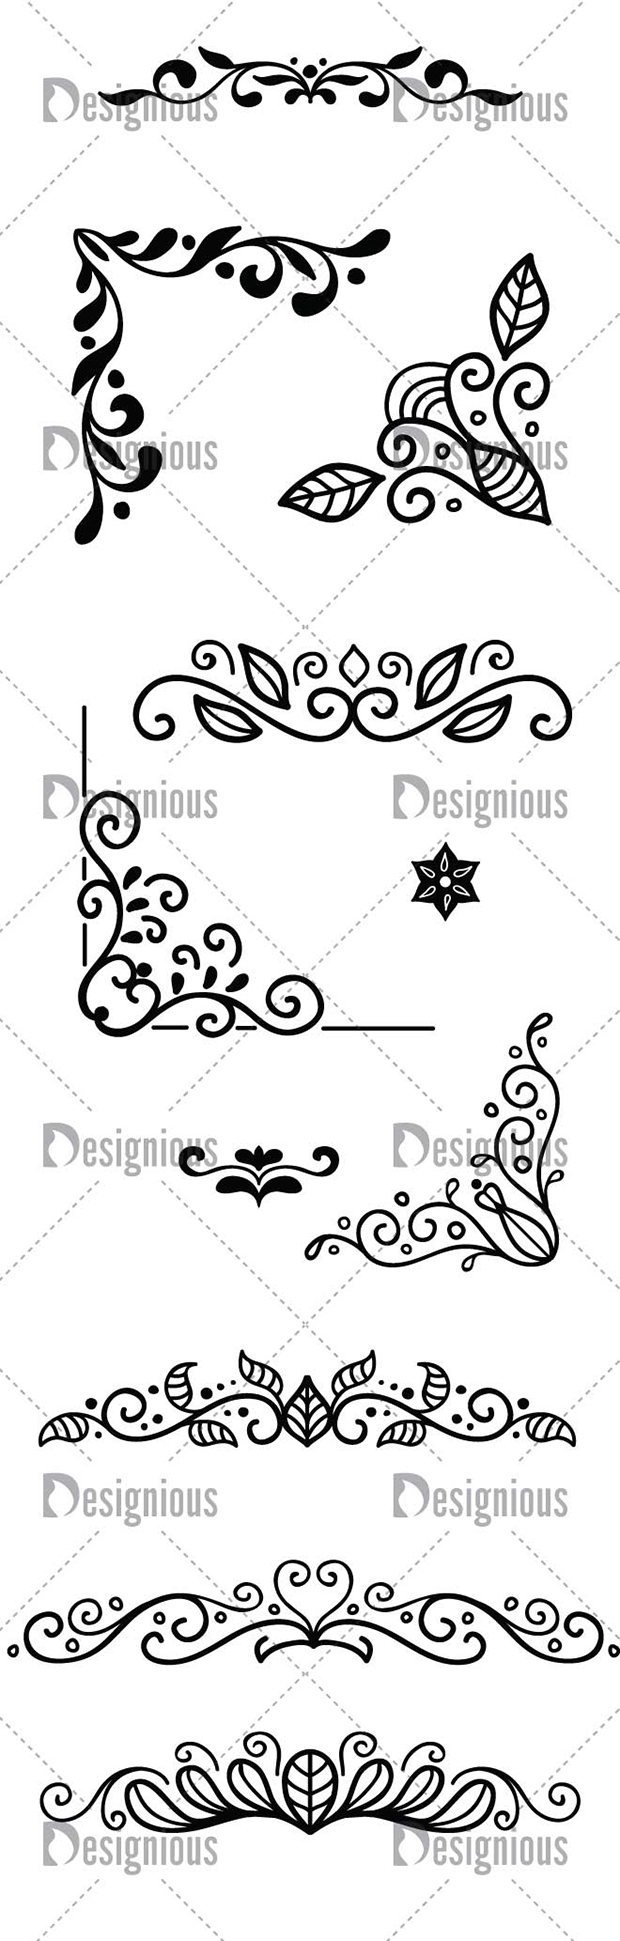 Vector Doodle Ornaments Pack 1 designious vector doodle ornaments pack 1 large preview